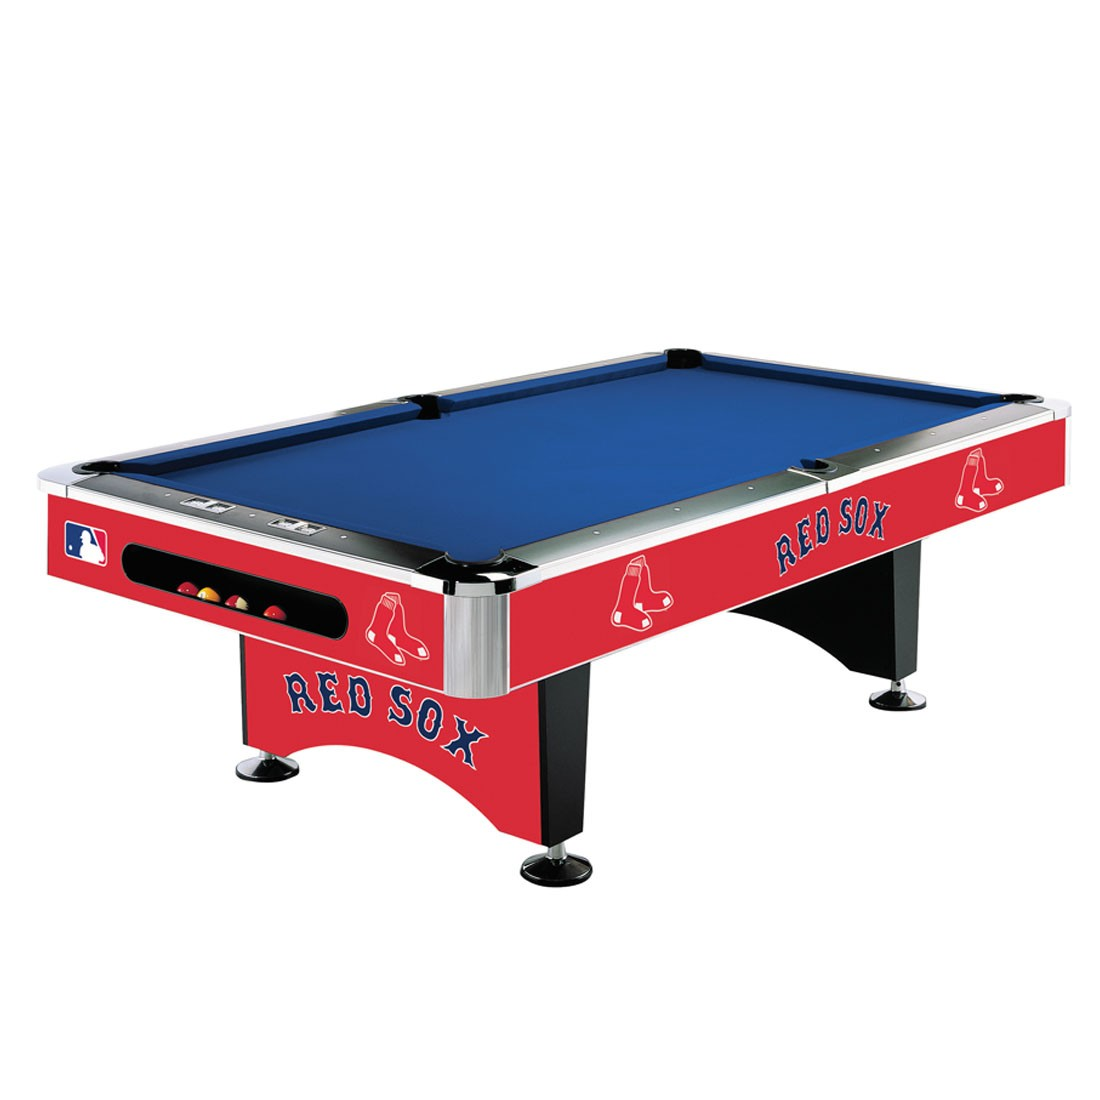 Merveilleux BOSTON RED SOX 8 FT. POOL TABLE